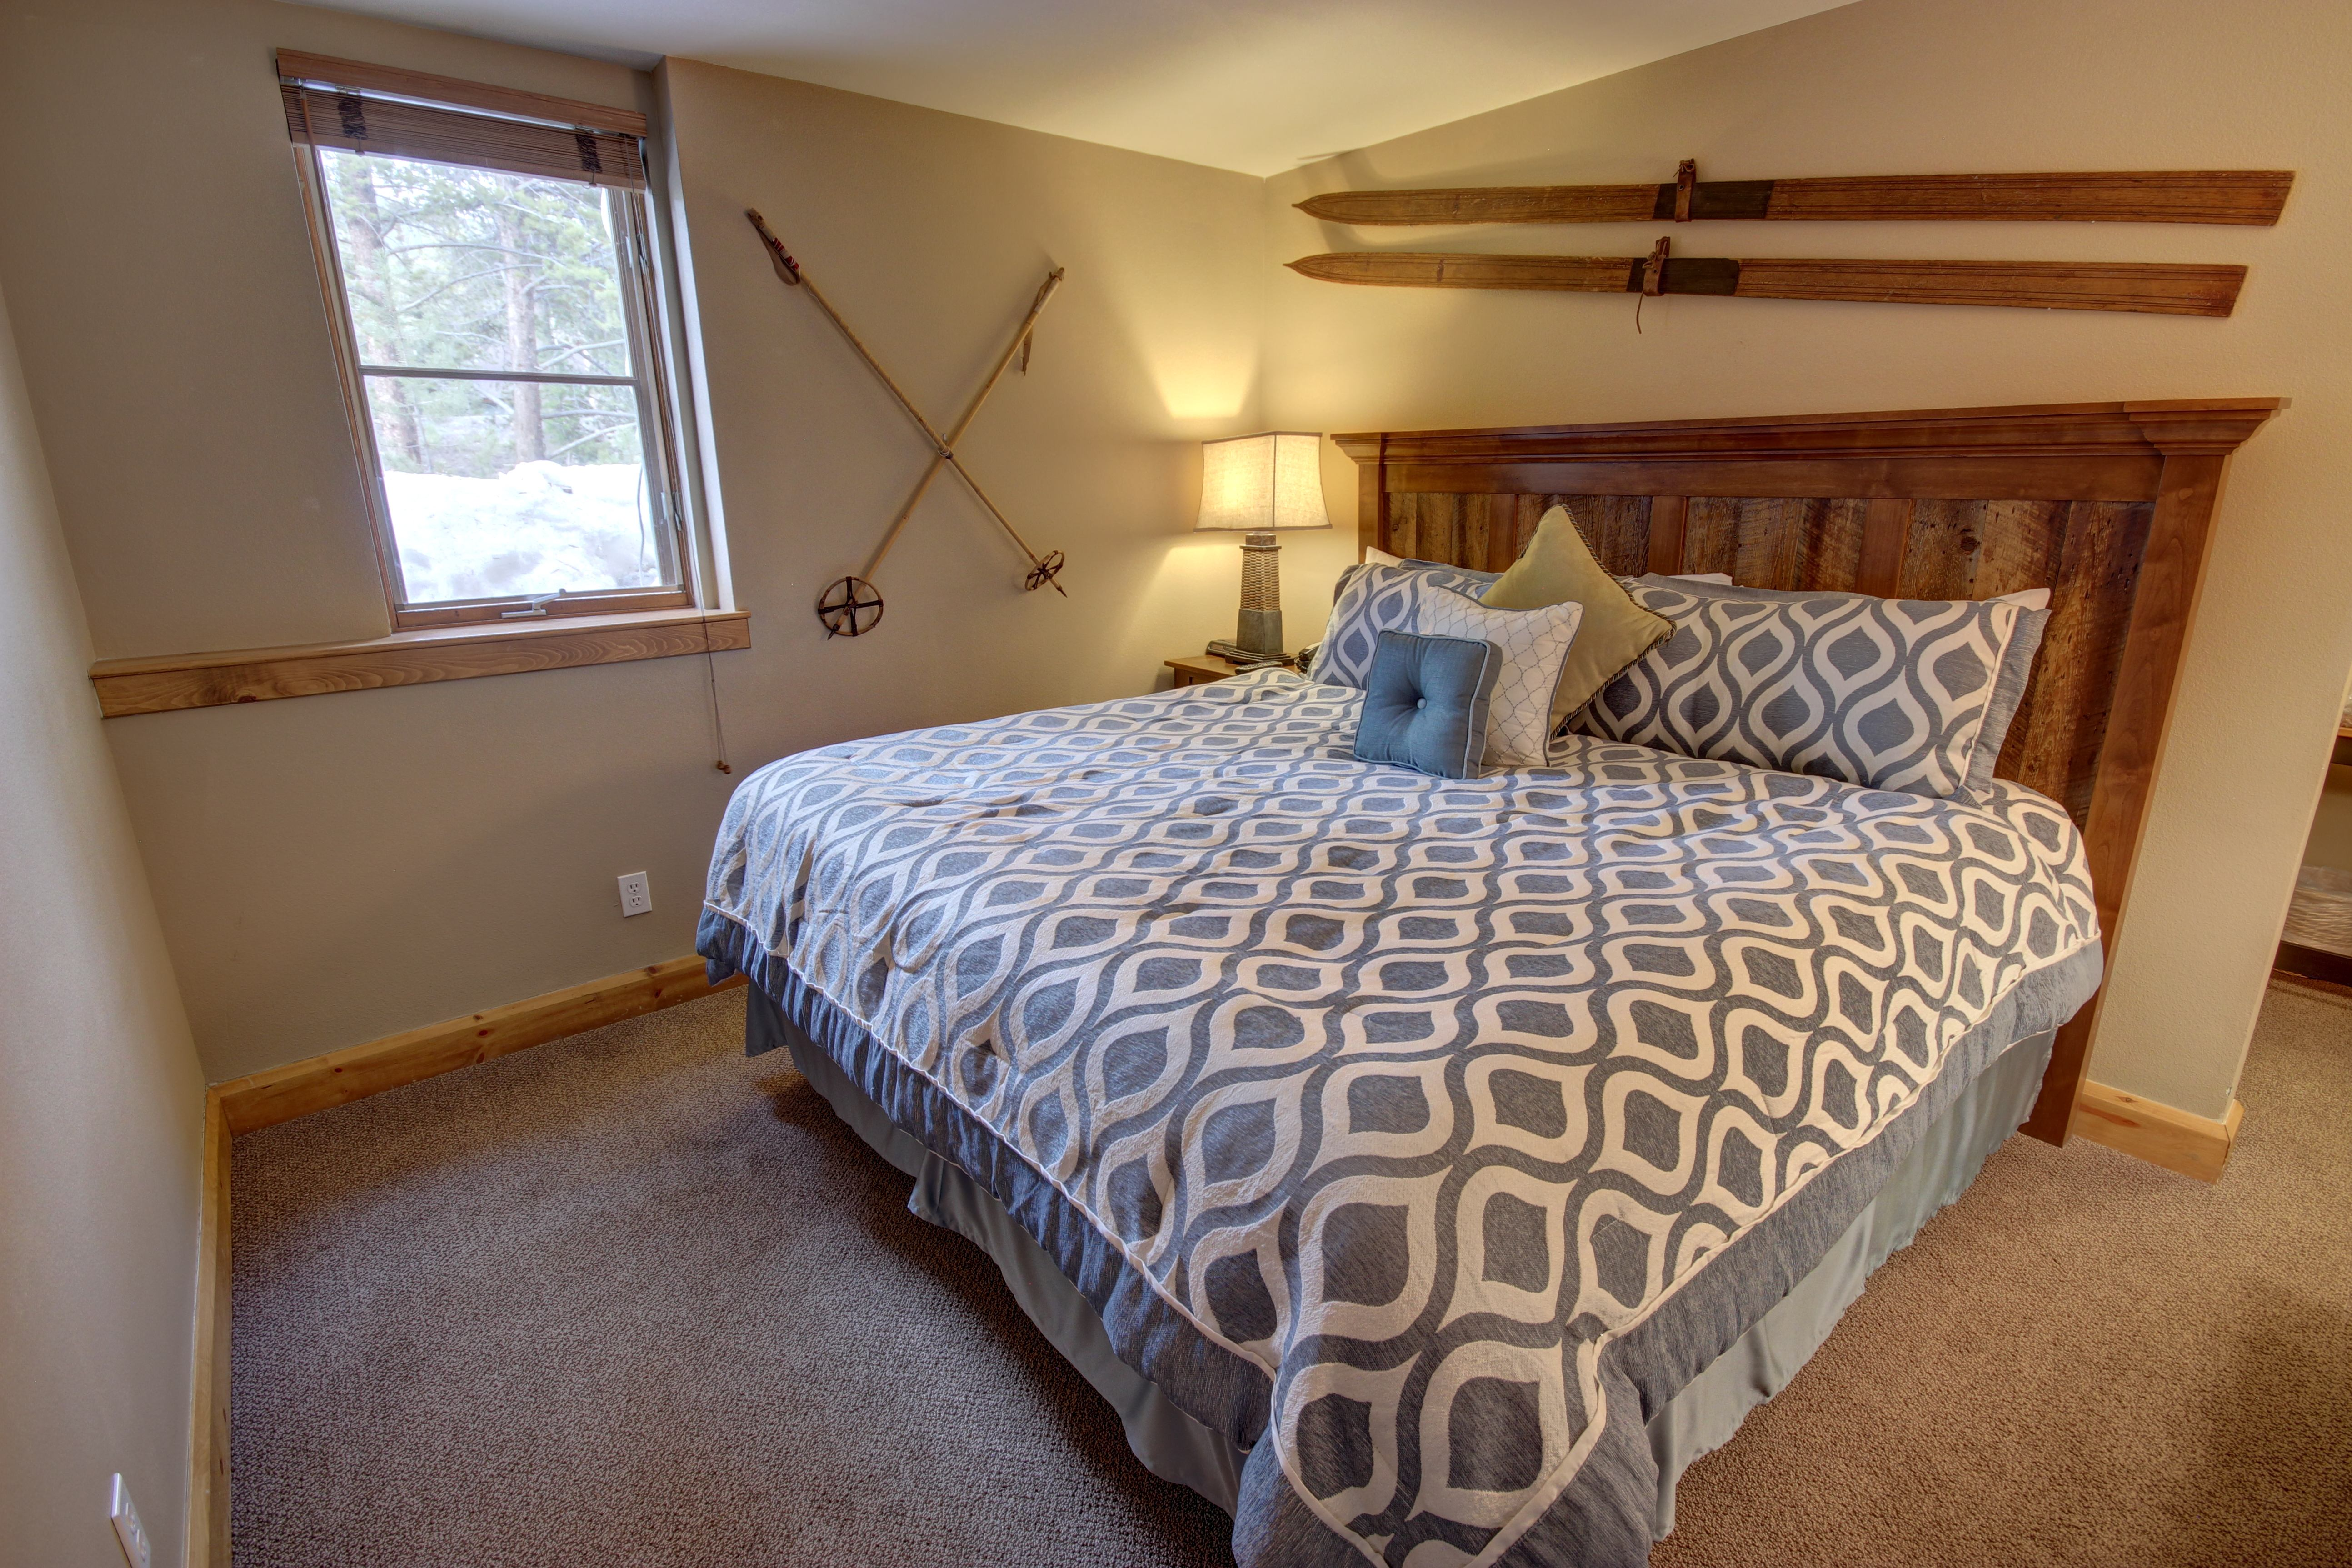 Bedroom with beautiful color and comfy bed